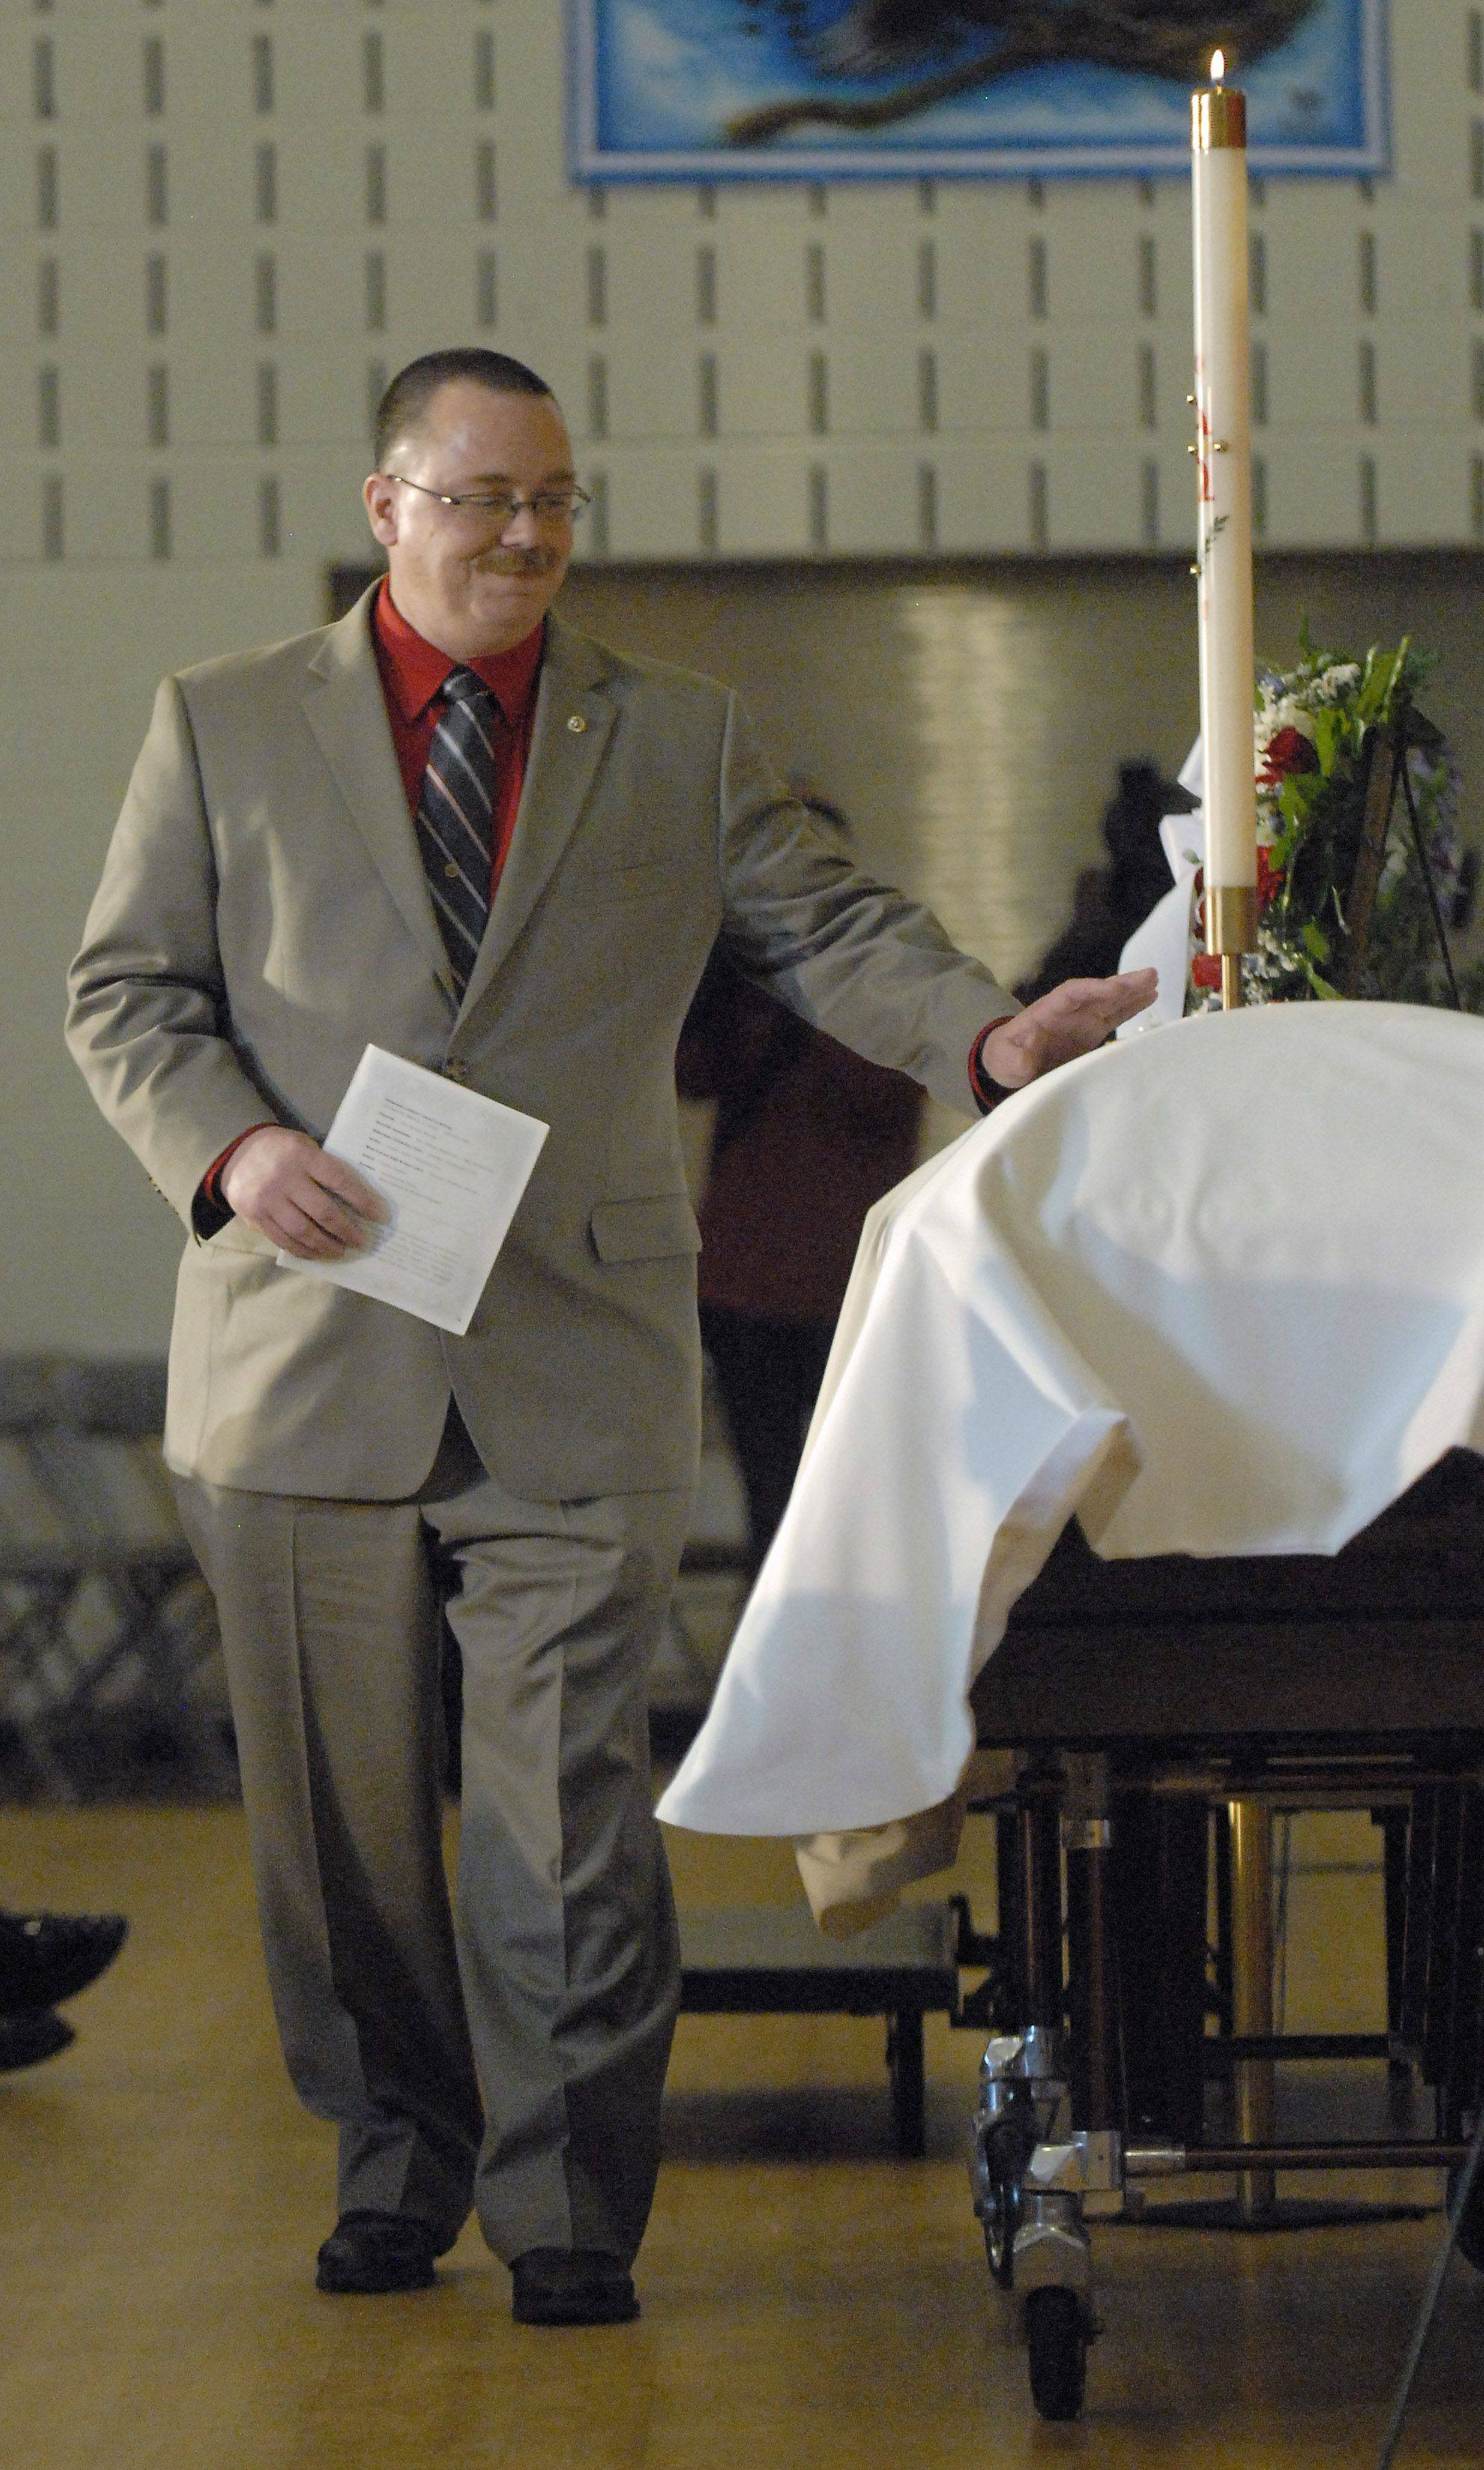 Bob Patterson, father of Spc. Christopher A. Patterson, pats his son's coffin after sharing a few words at the close of his funeral service at Immanuel Lutheran Church in Batavia on Saturday, January 21.